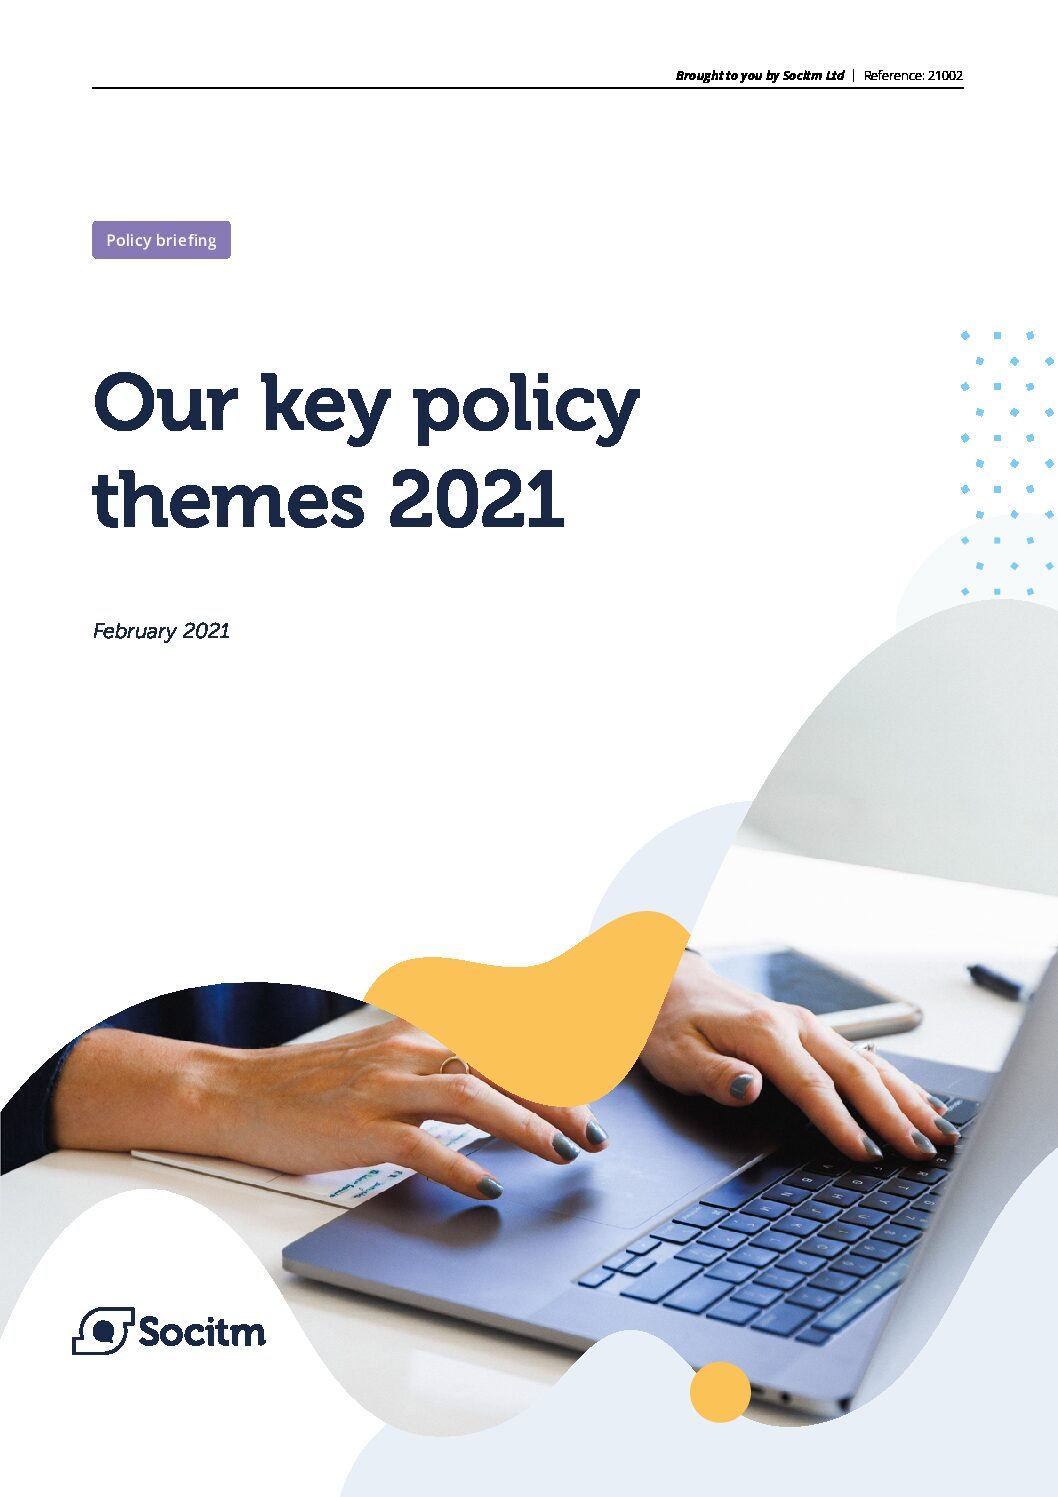 Key Policy Themes 2021 resource